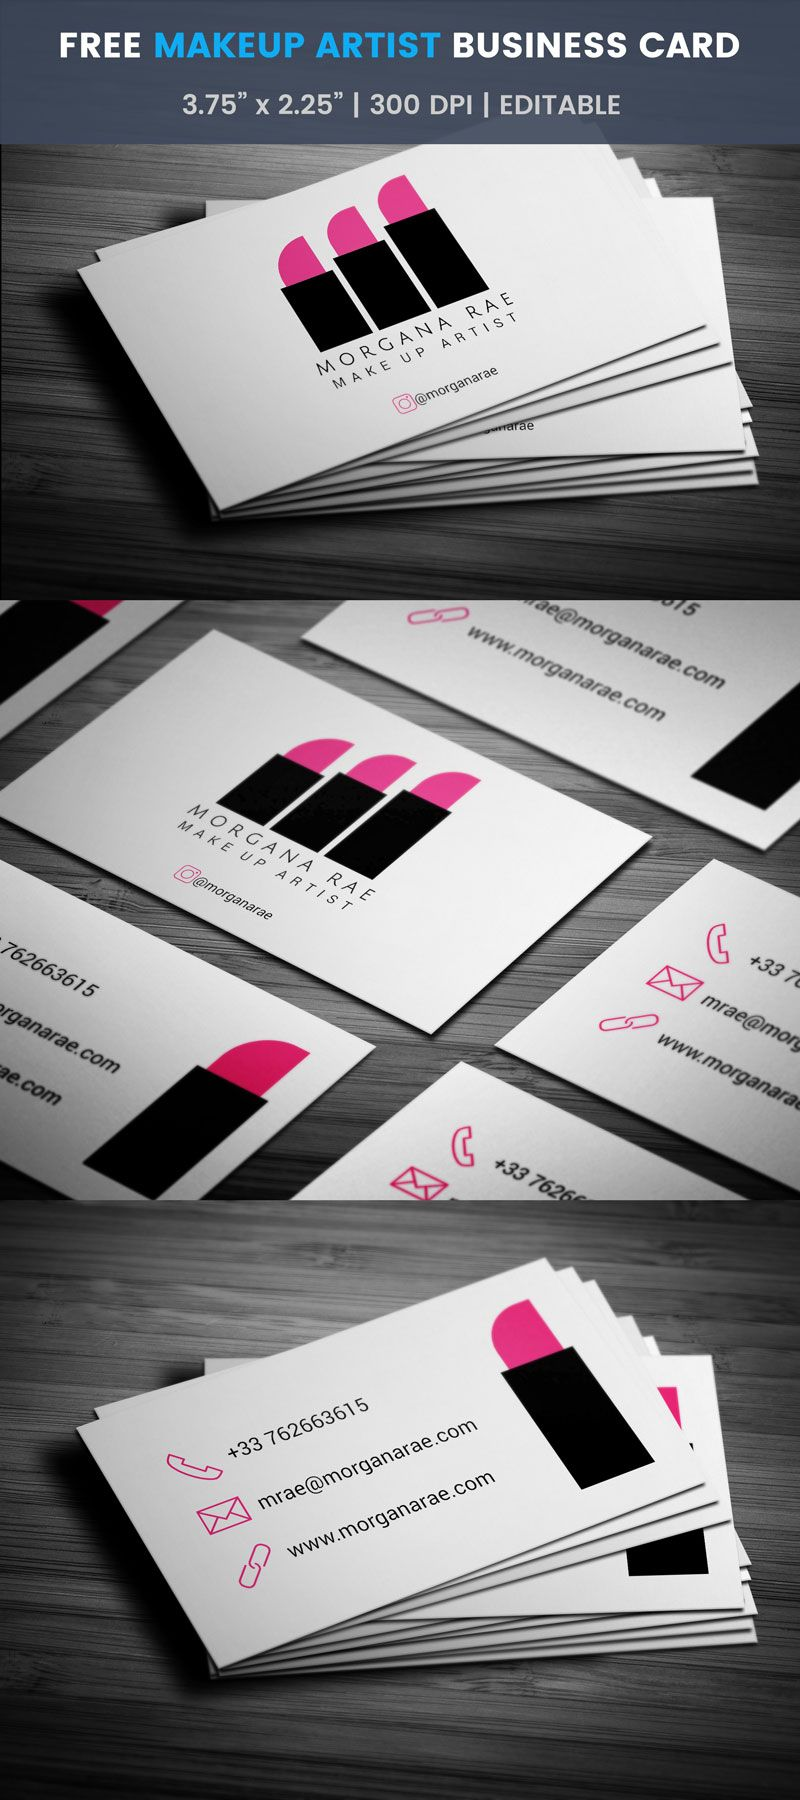 Minimal makeup artist business card full preview free business free minimal makeup artist business card template reheart Image collections